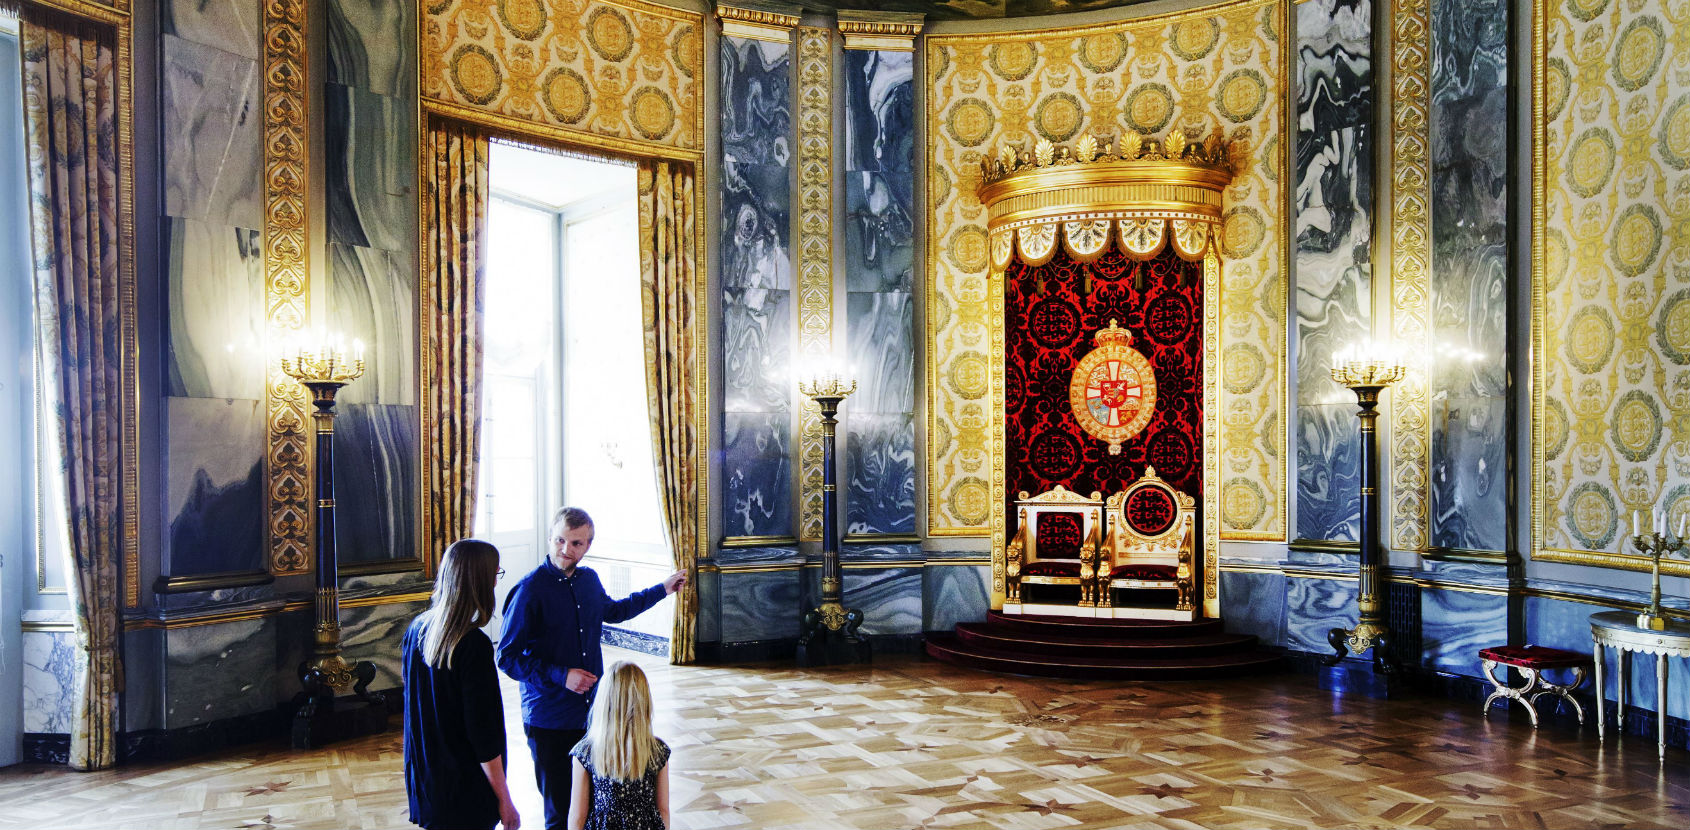 The Throne Room Christiansborg Palace photo Thorkild Jensen